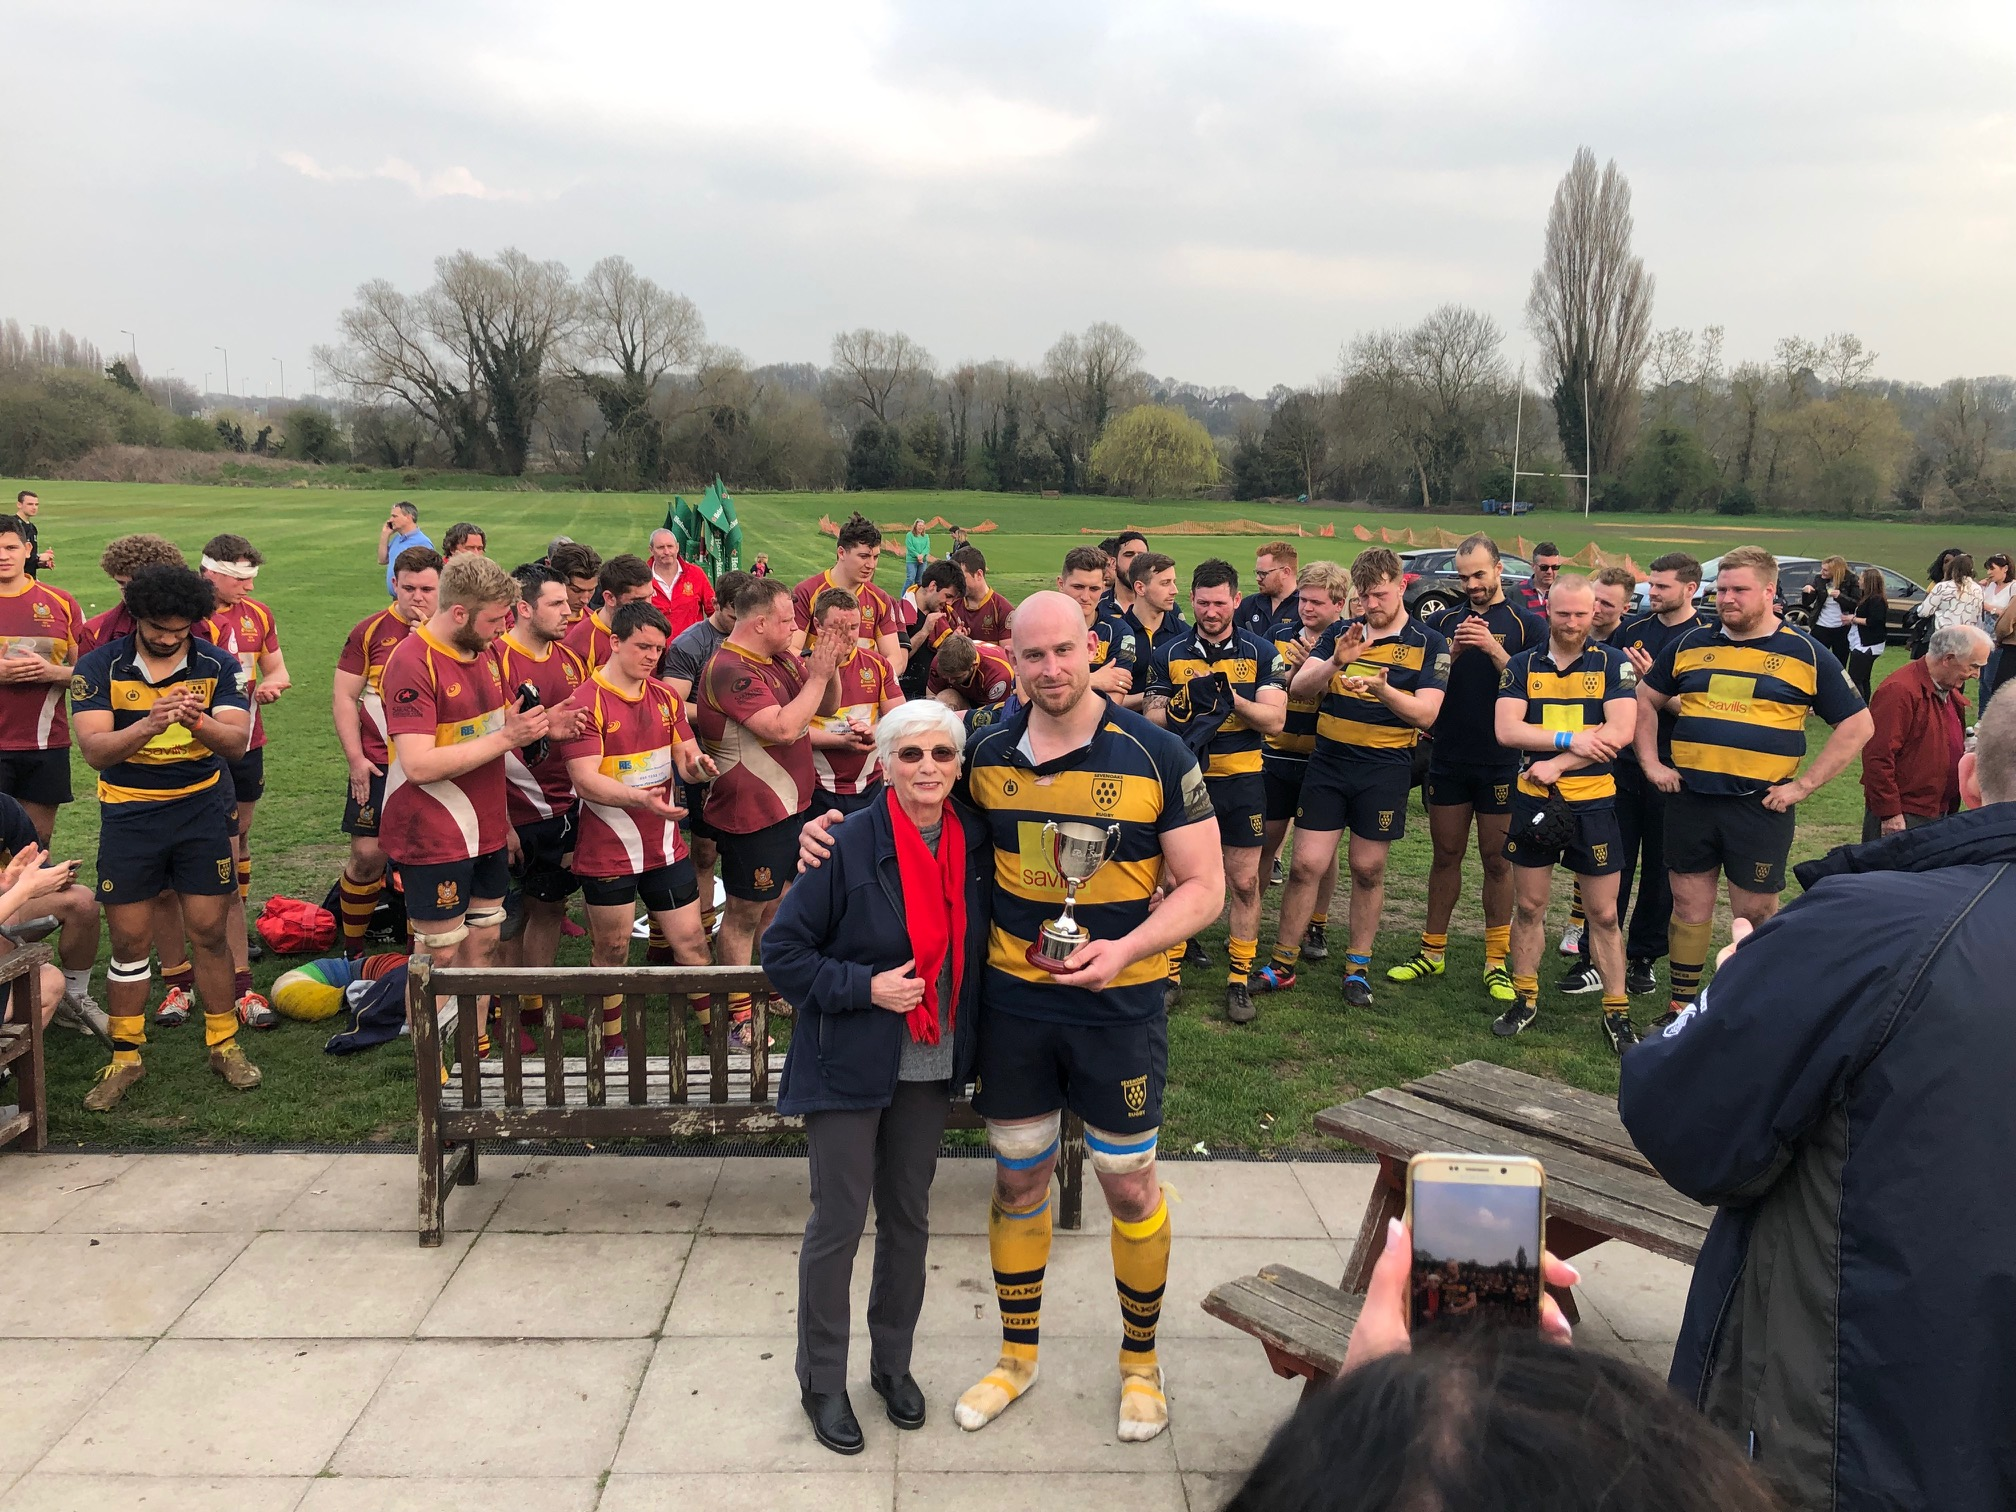 Oaks captain Stuart Coleman receives the Ron Standen Cup from Pat Standen. Photo Credit: Steve Fitzmaurice